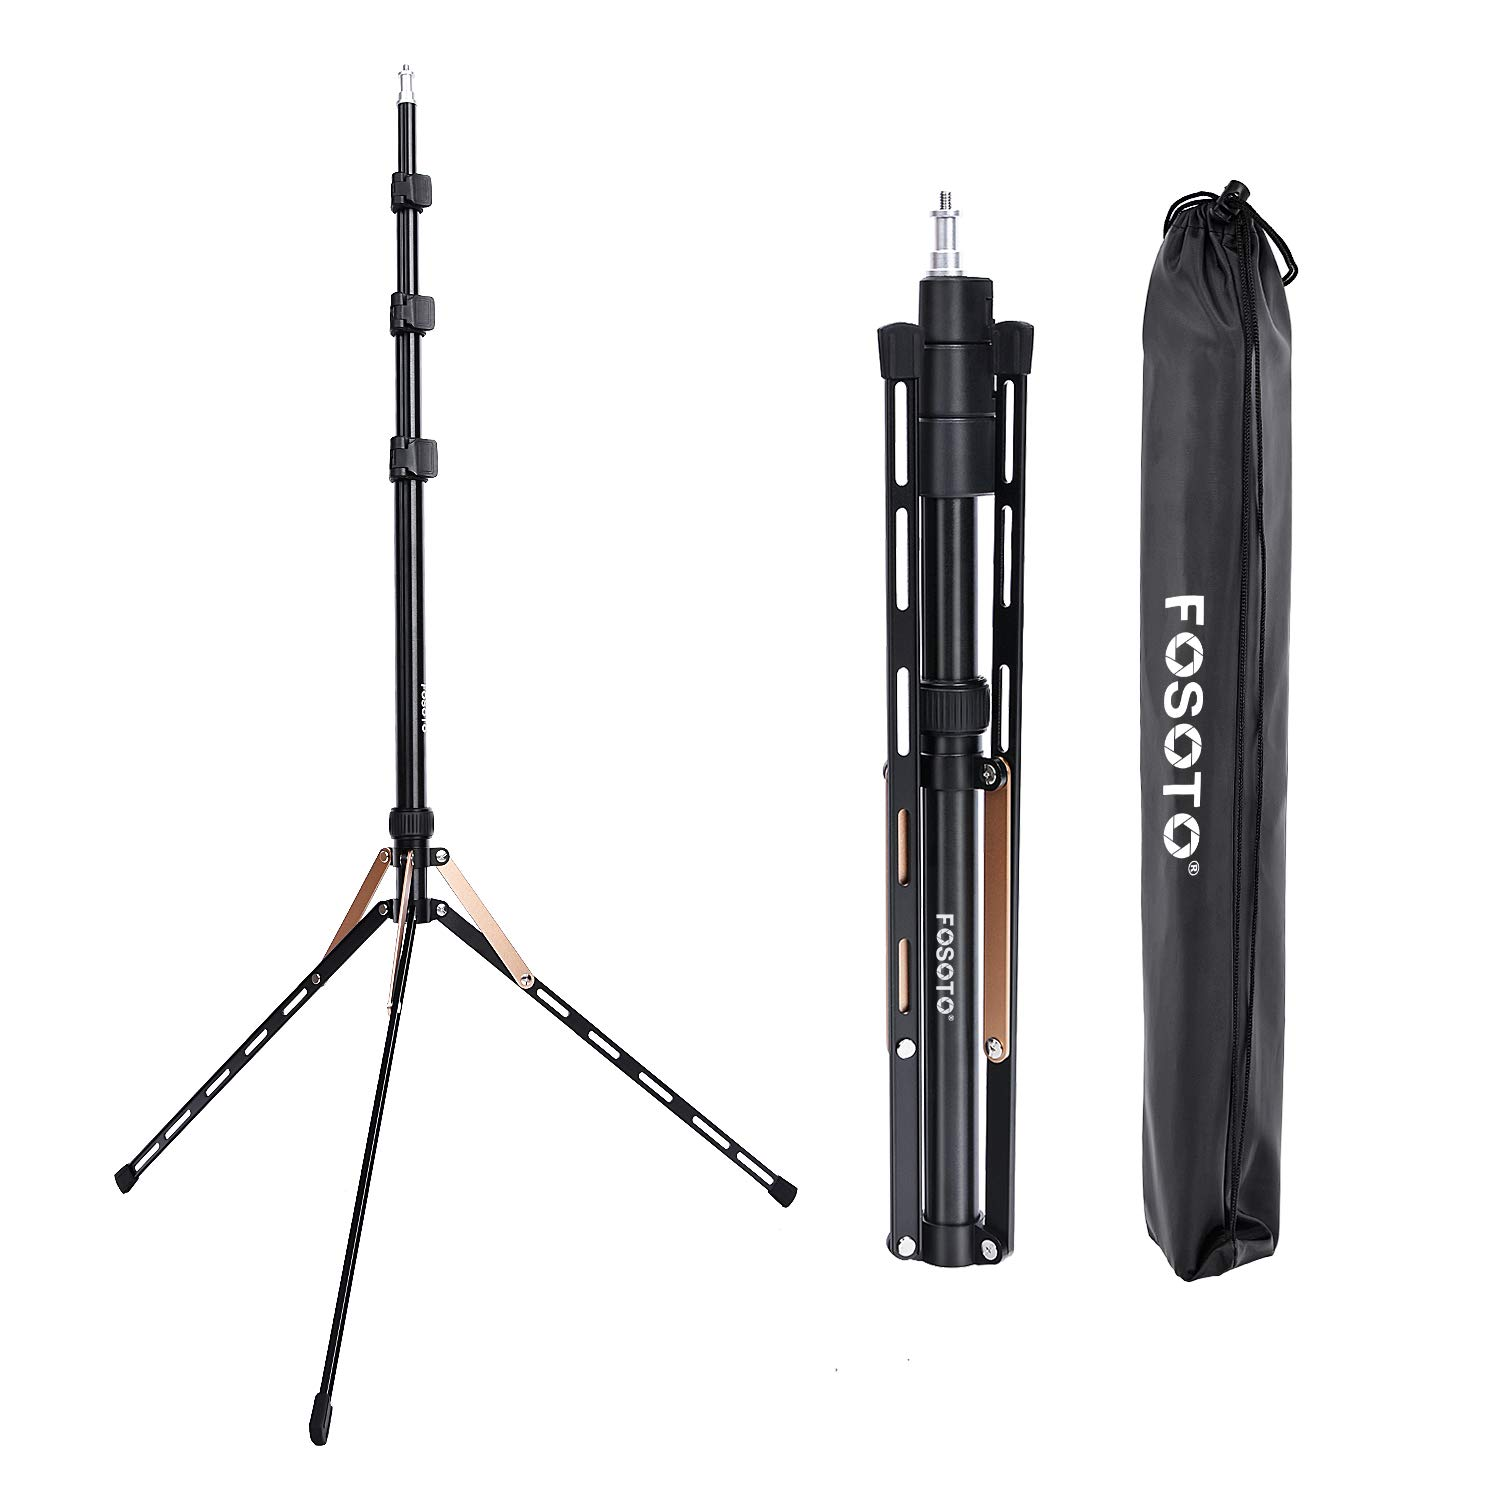 FOSOTO 75in Fold Video Tripod Light Stand Super Lightweight Compact for Ring Light, Speedlight, Flash, Umbrella, Softbox, Filming Product Portrait Shooting Lighting Stand by FOSOTO